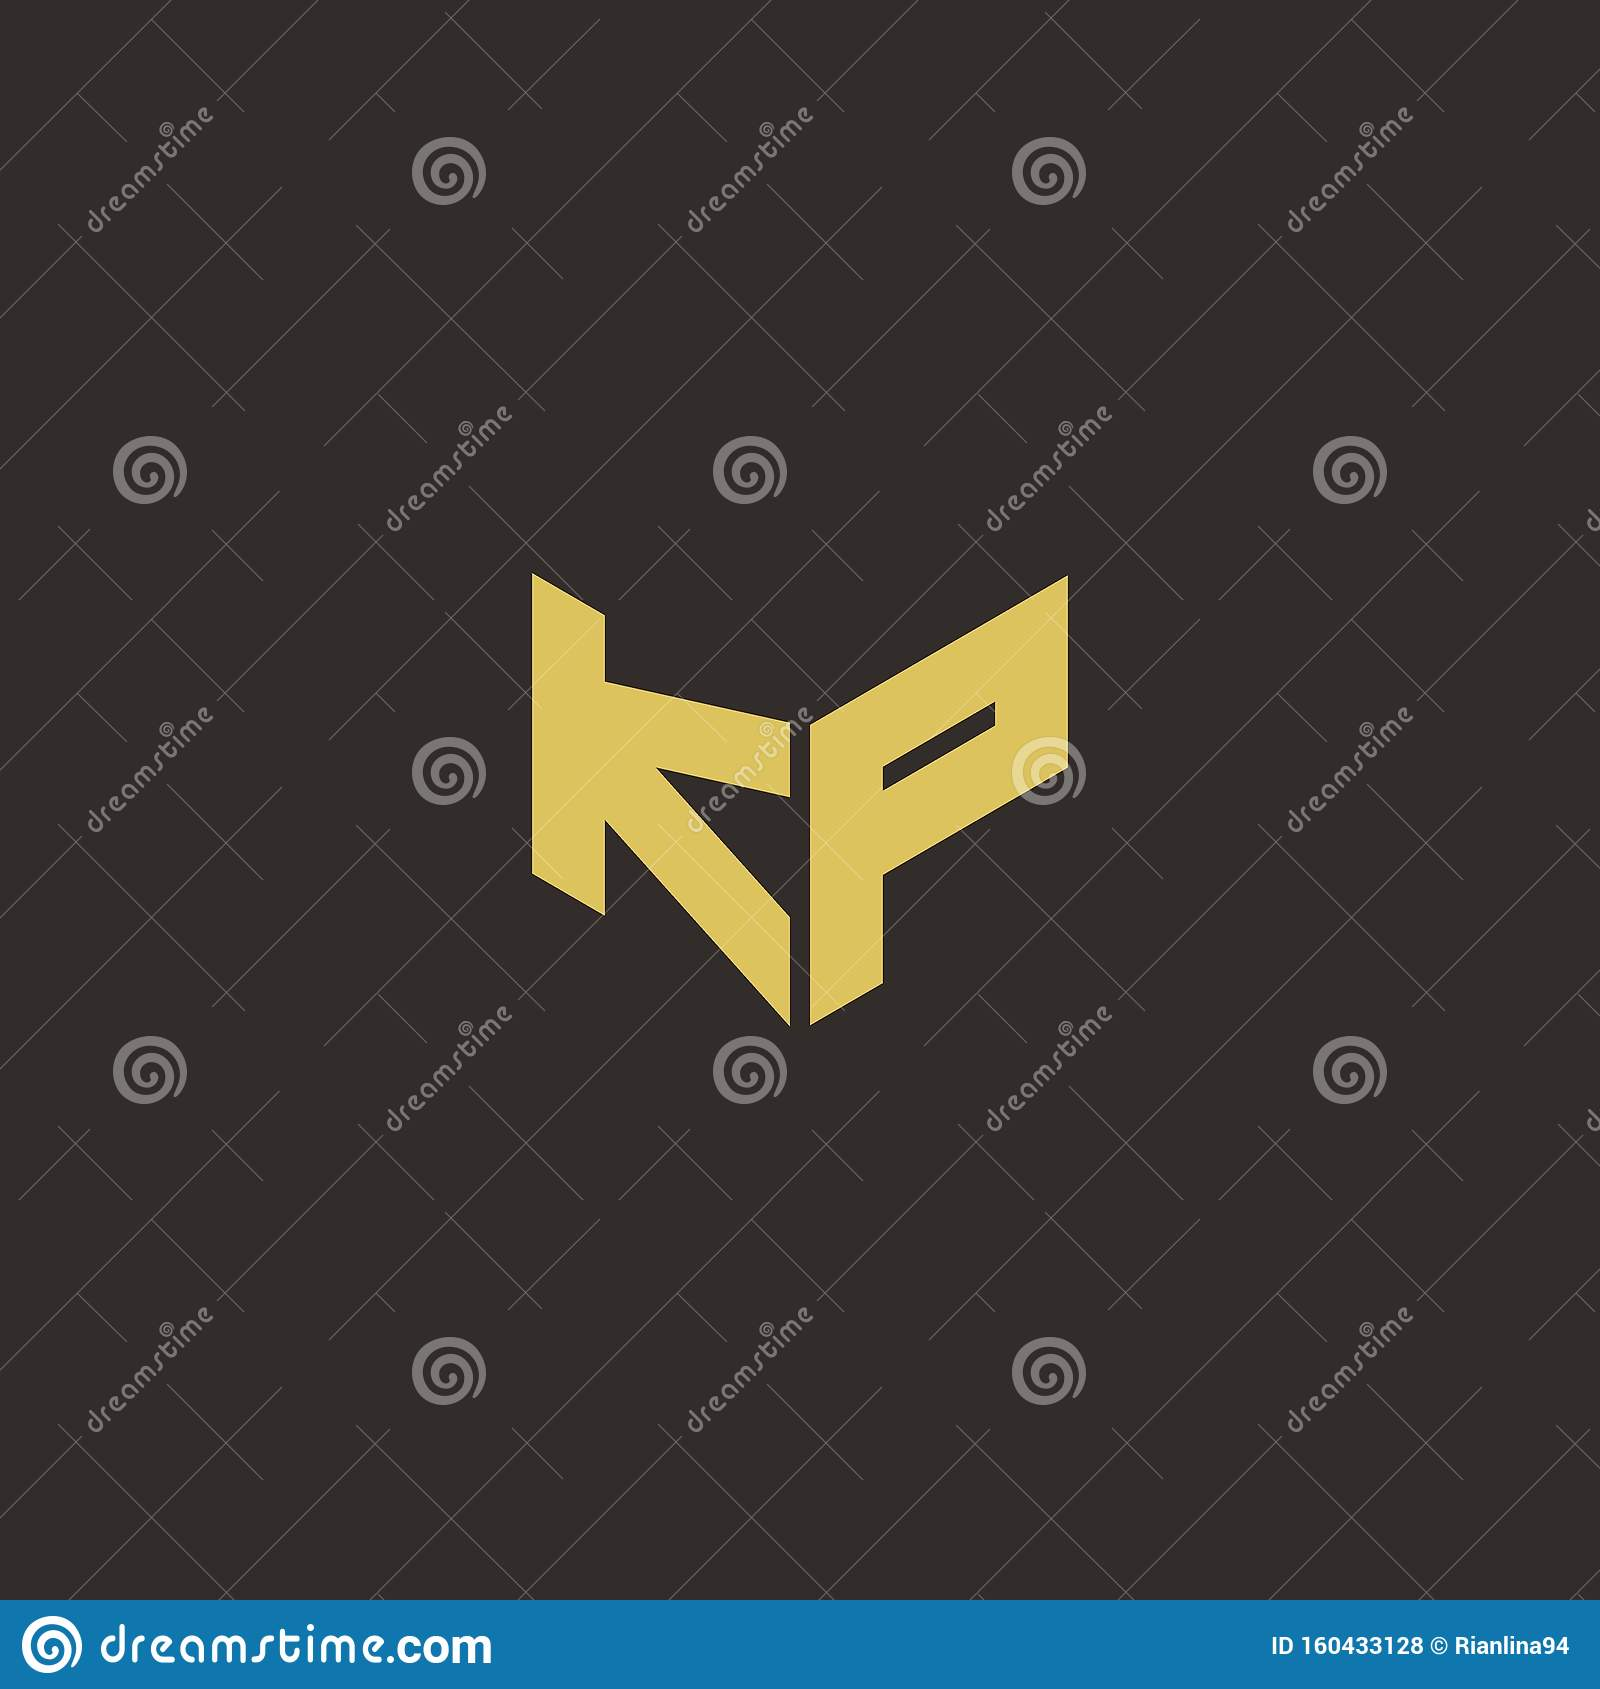 KP Logo Letter Initial Logo Designs Template With Gold And